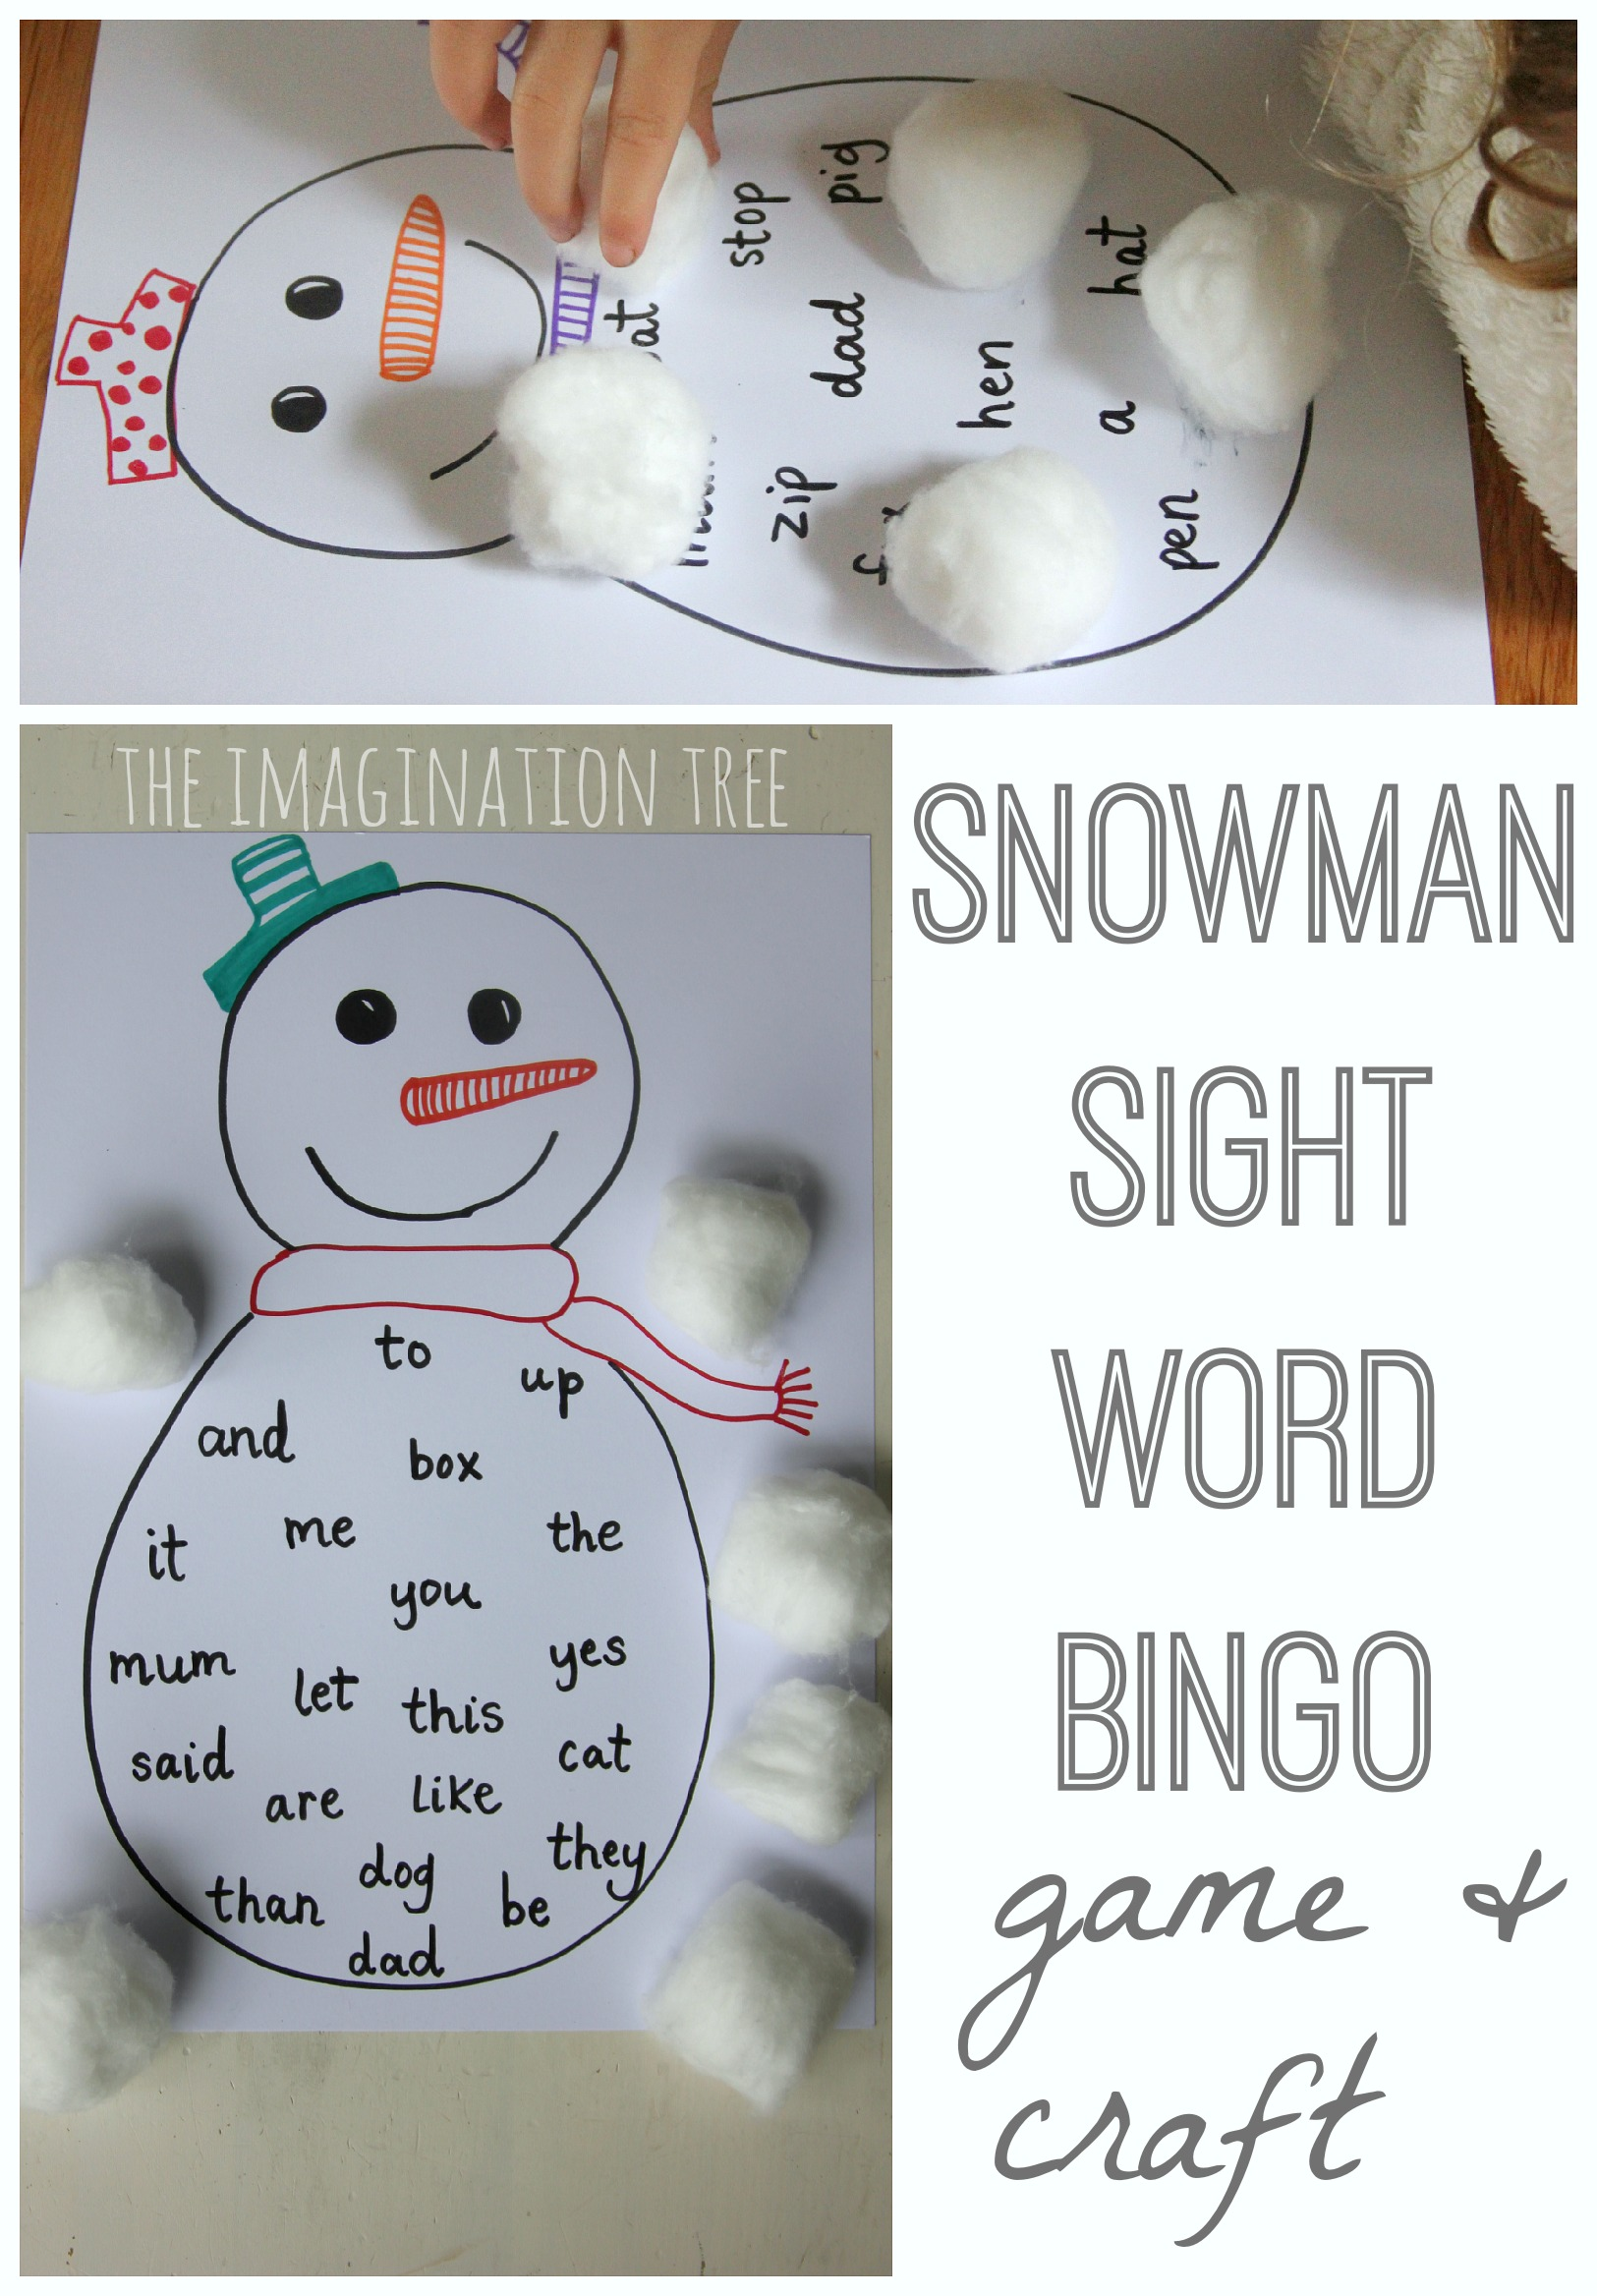 Craft Bingo Tree The  sight word up Word books Snowman Imagination   Sight